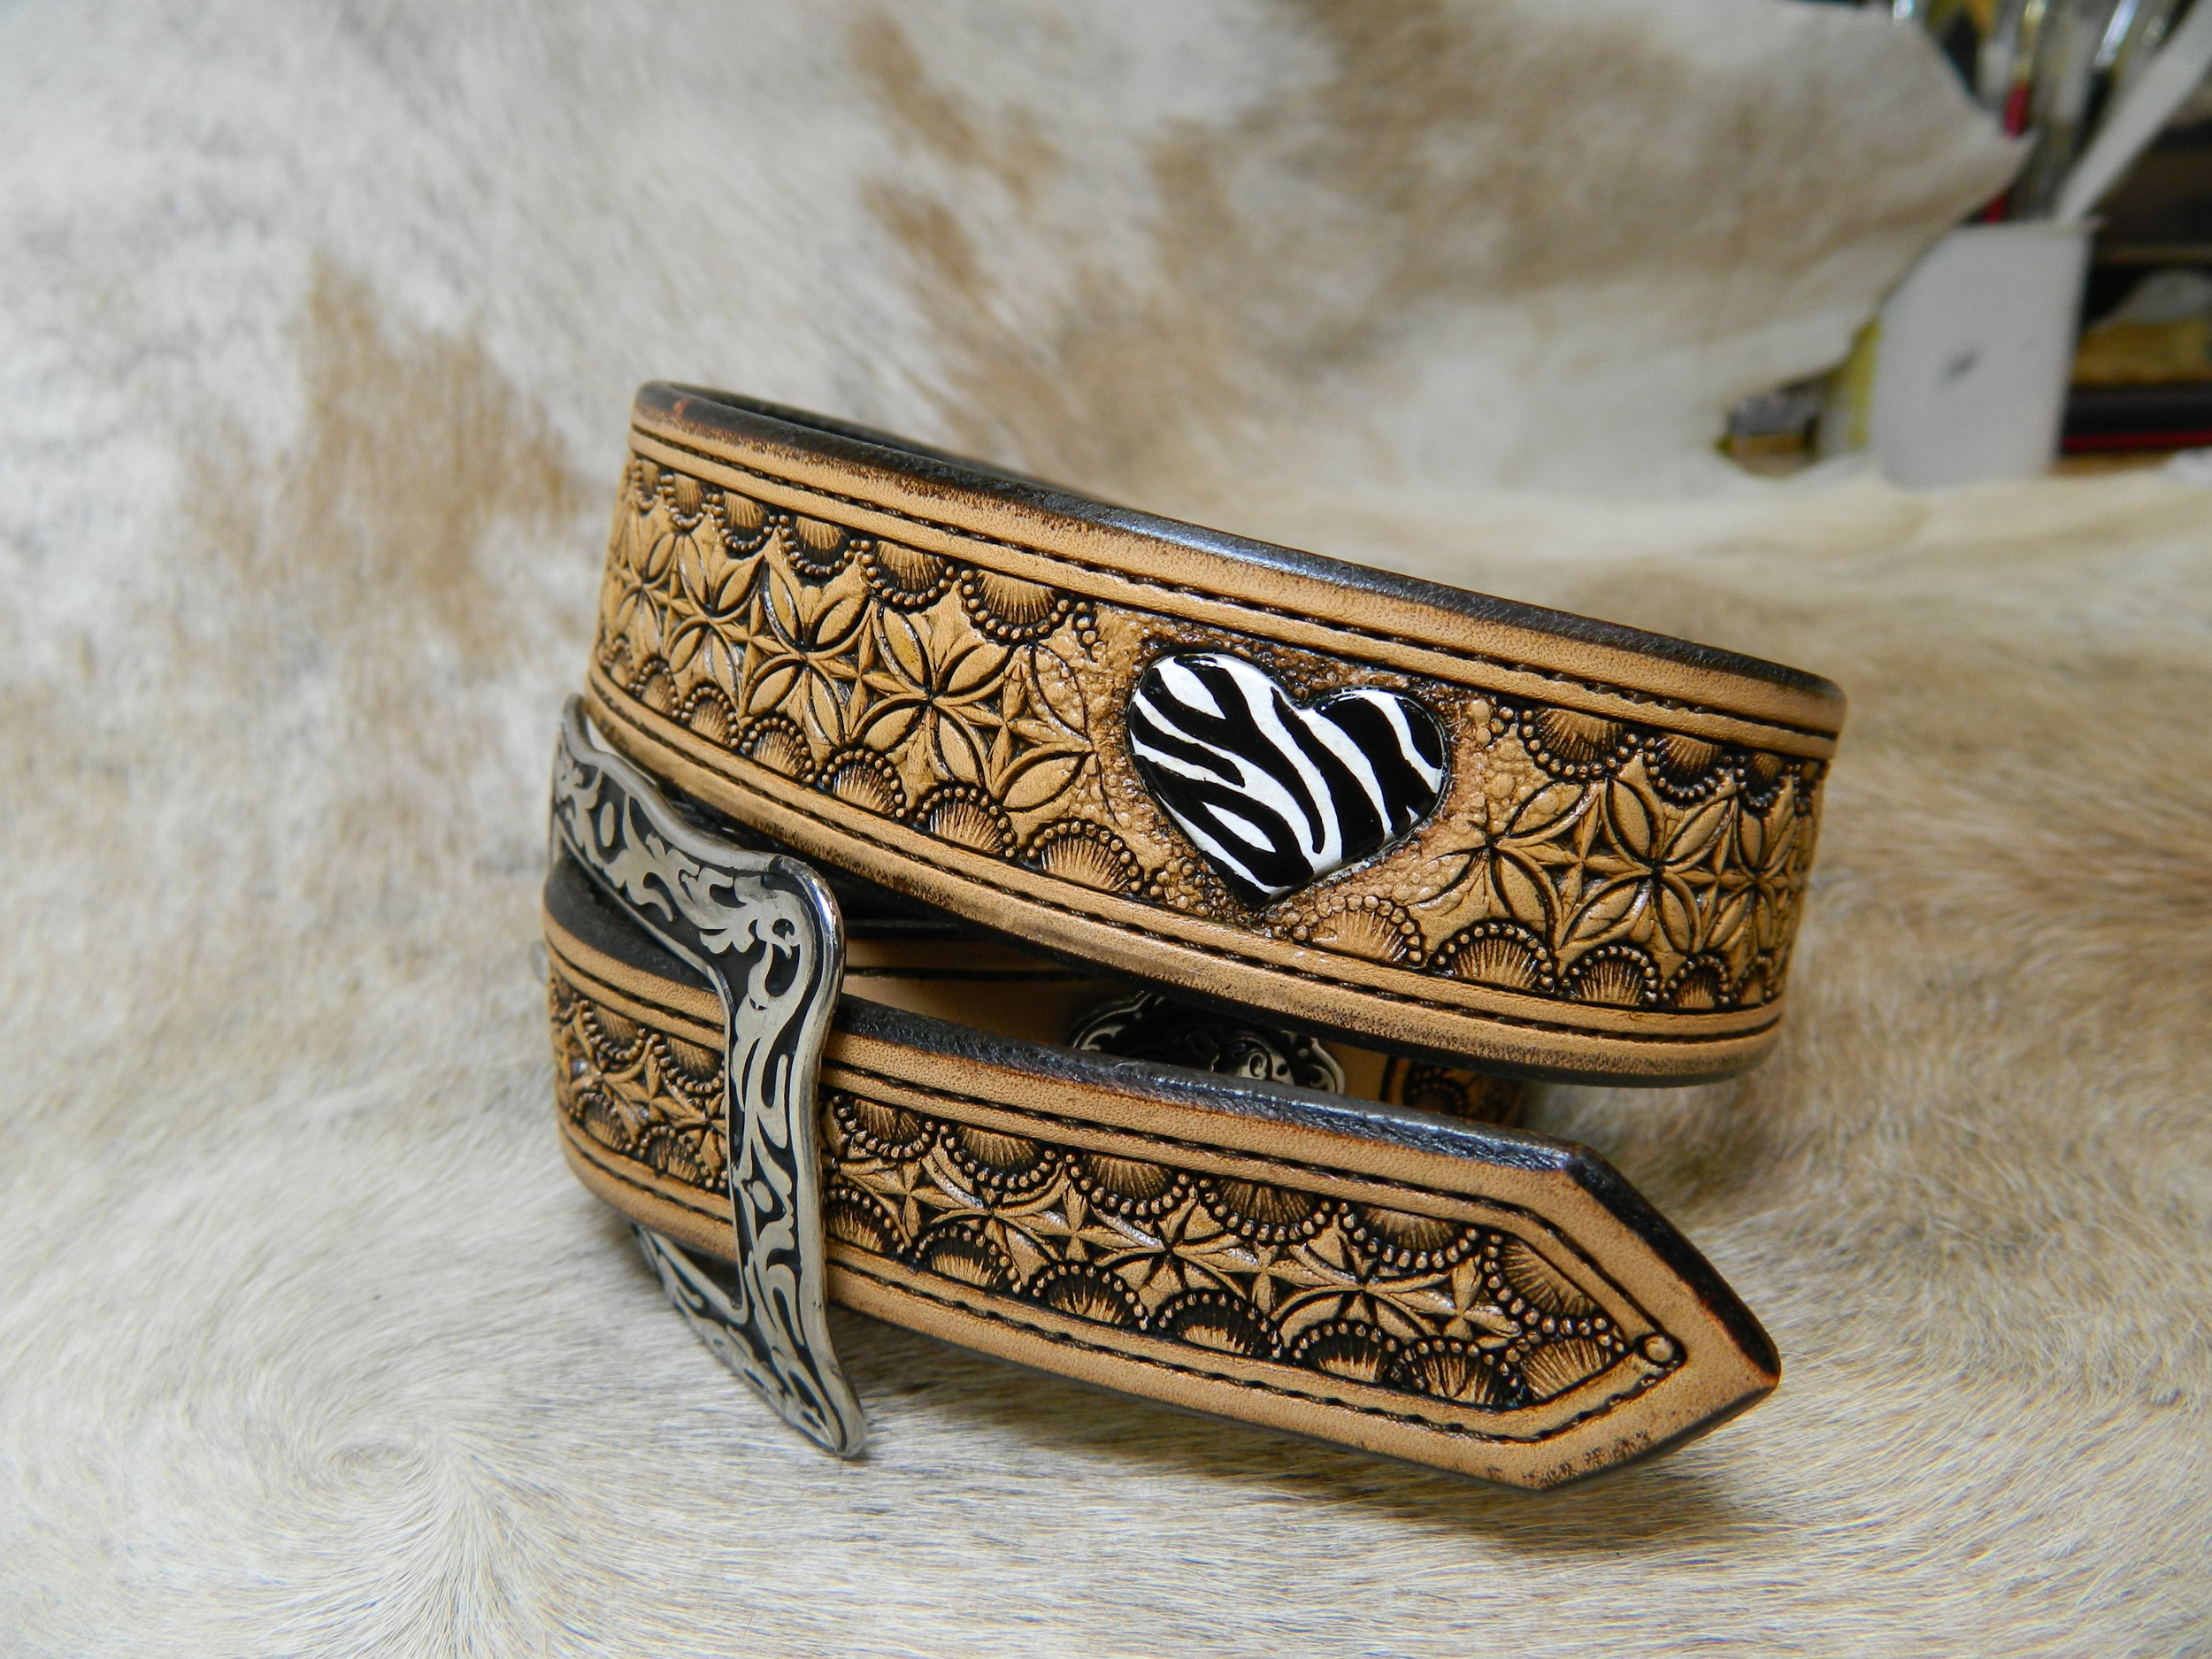 Custom Tooled Leather Belt